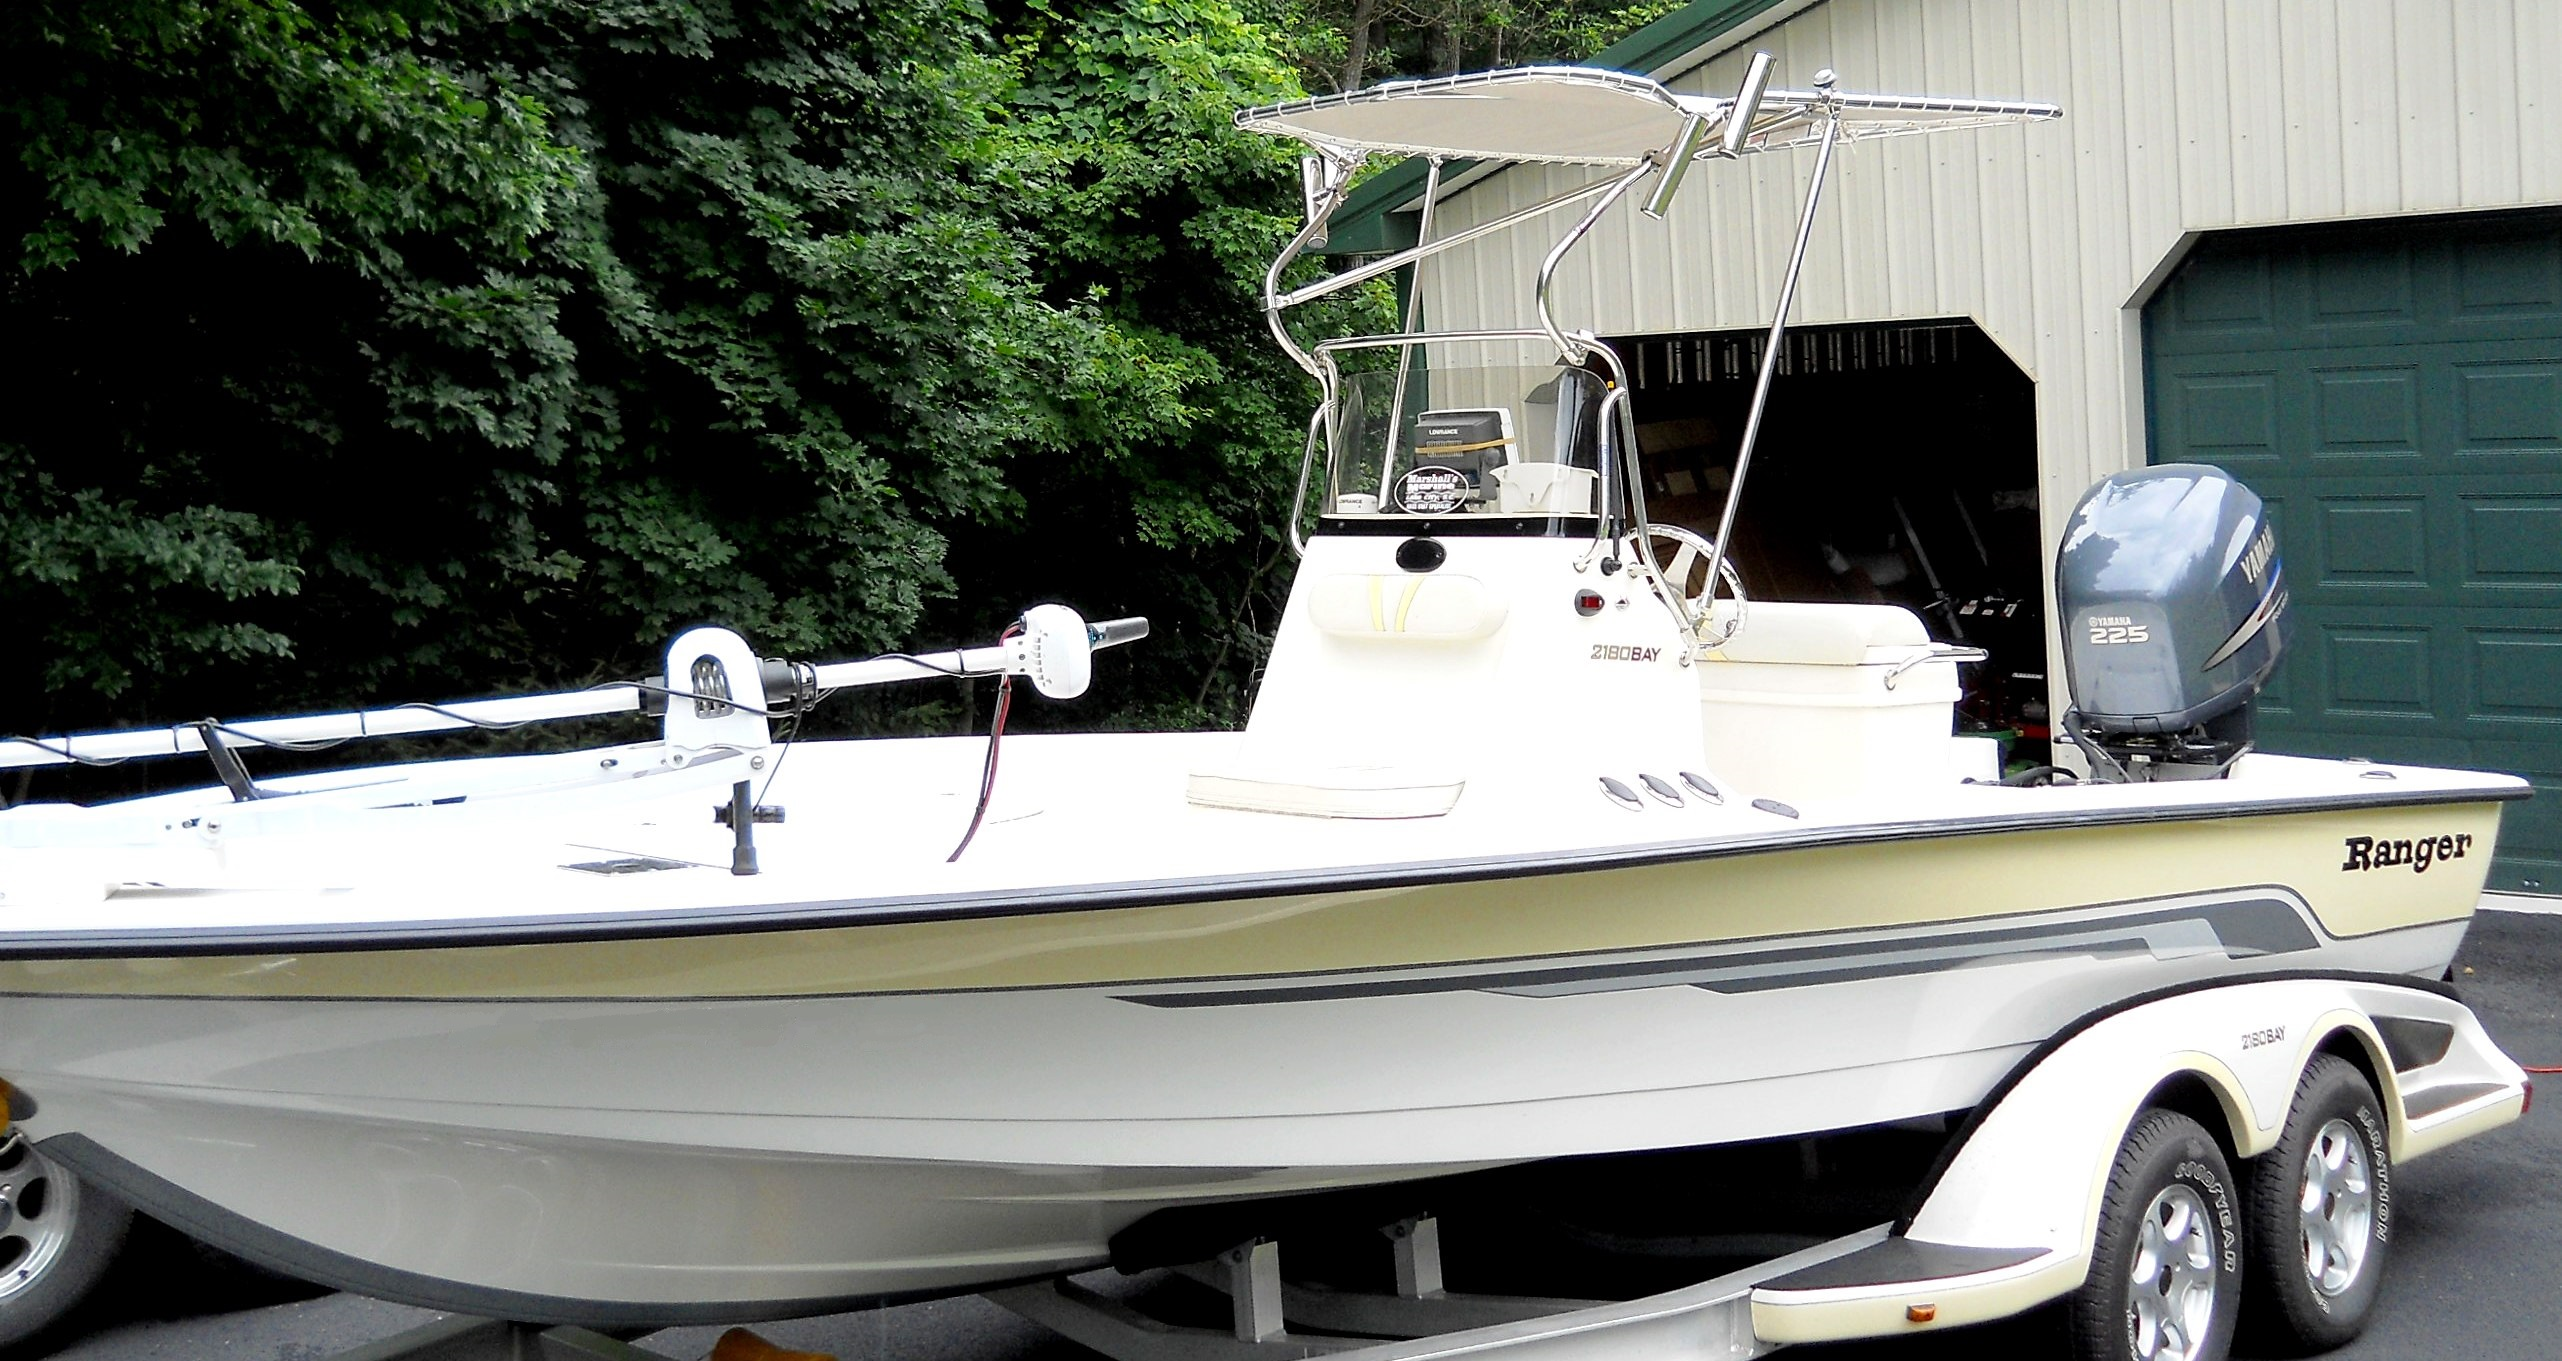 Ranger 2180 Bay Ranger, 2005, T-Topless™, port front